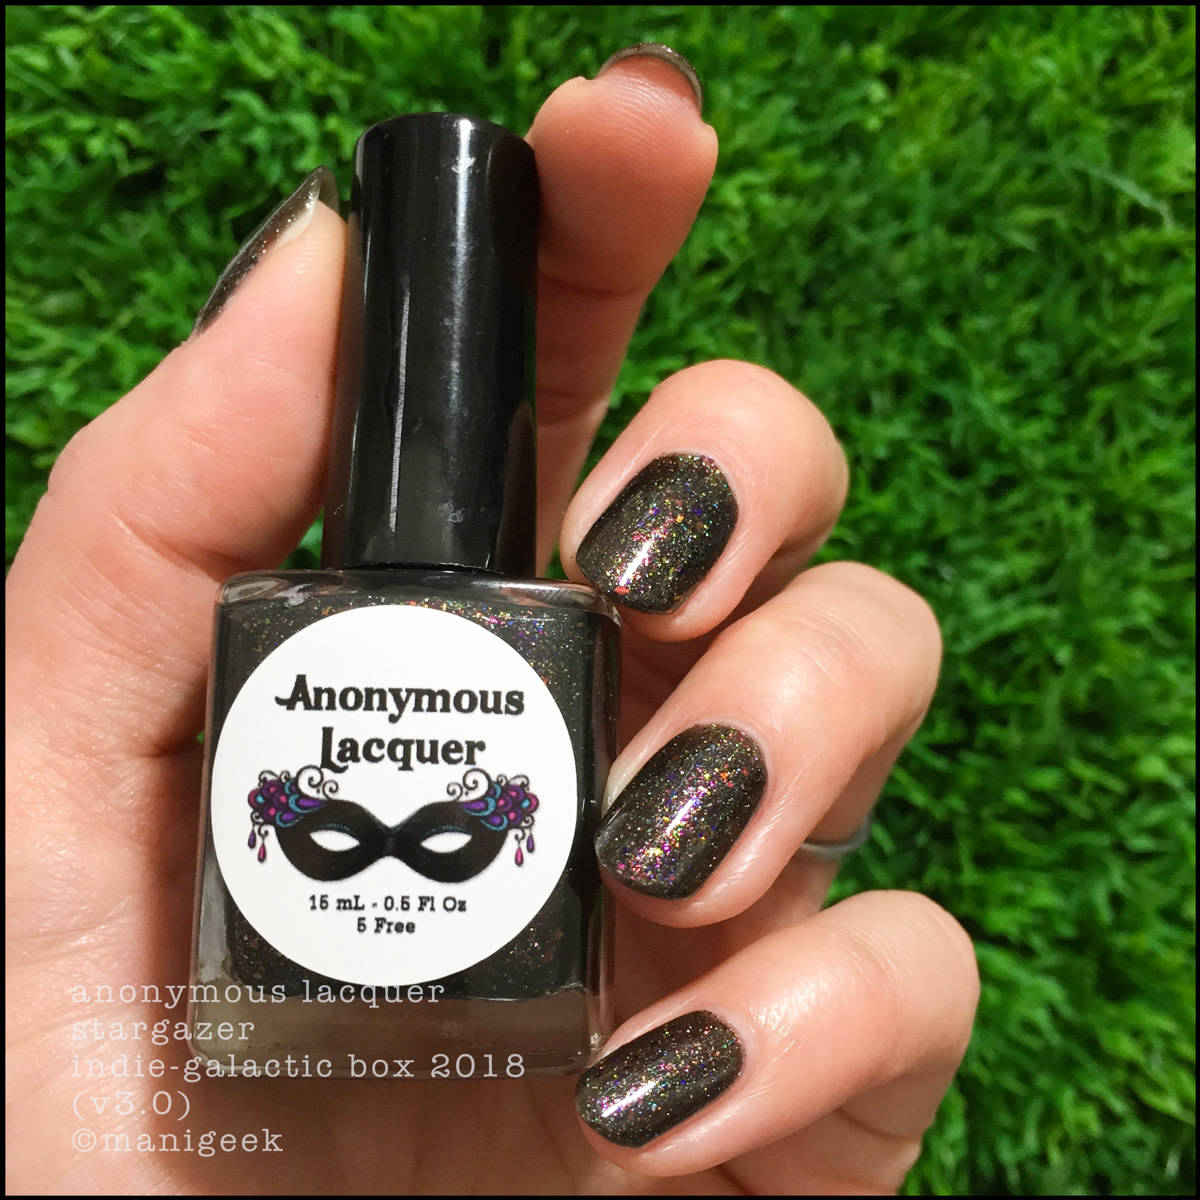 Anonymous Lacquer Stargazer 2 - Indie Galactic Box 3 2018